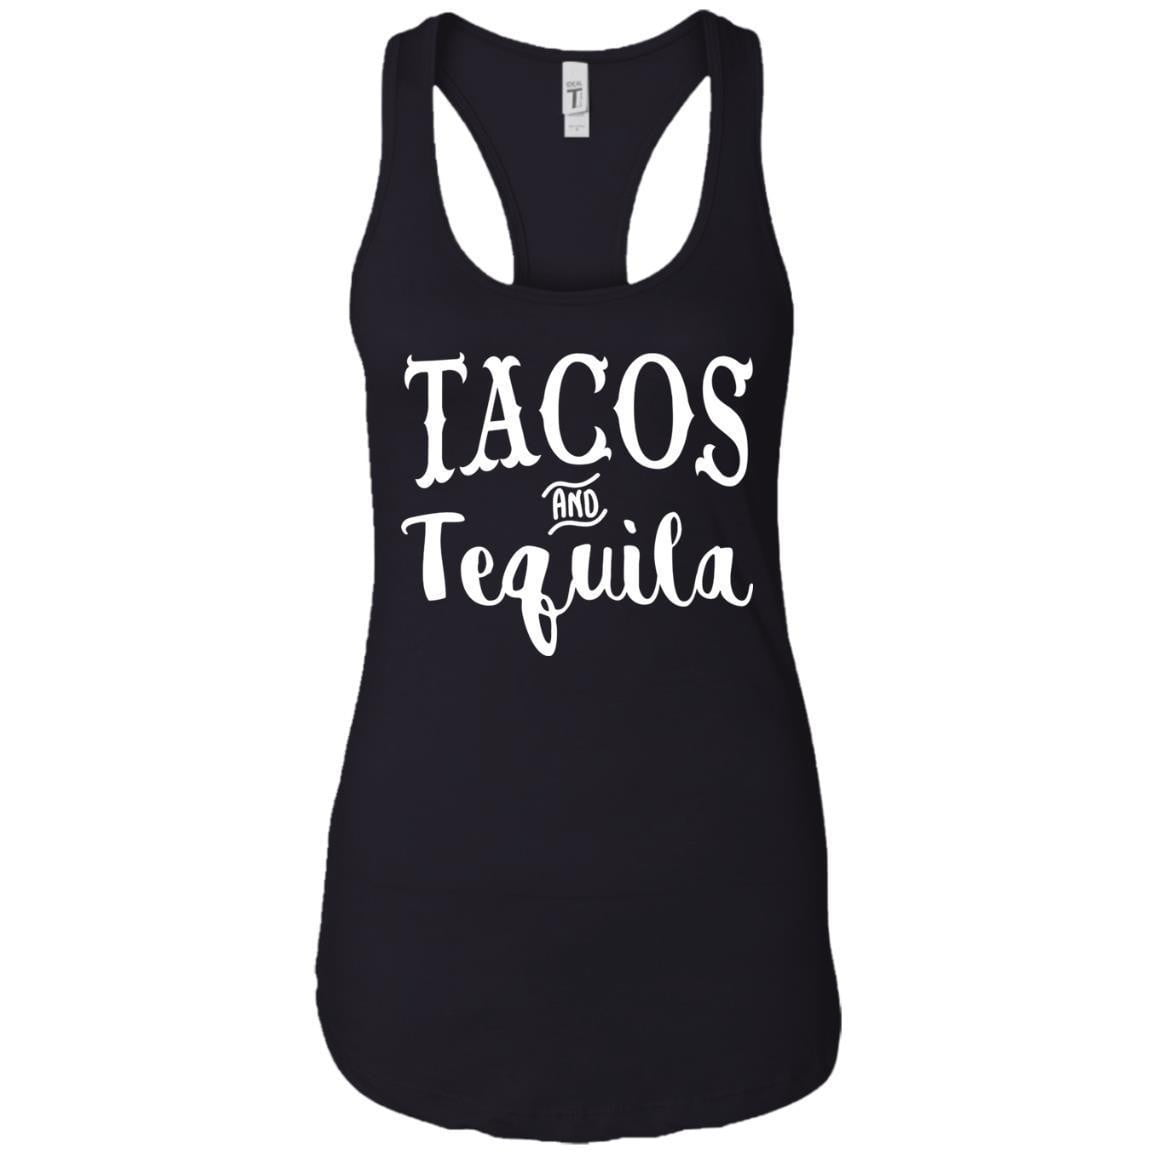 TACOS AND TEQUILA WOMEN'S RACERBACK TANK